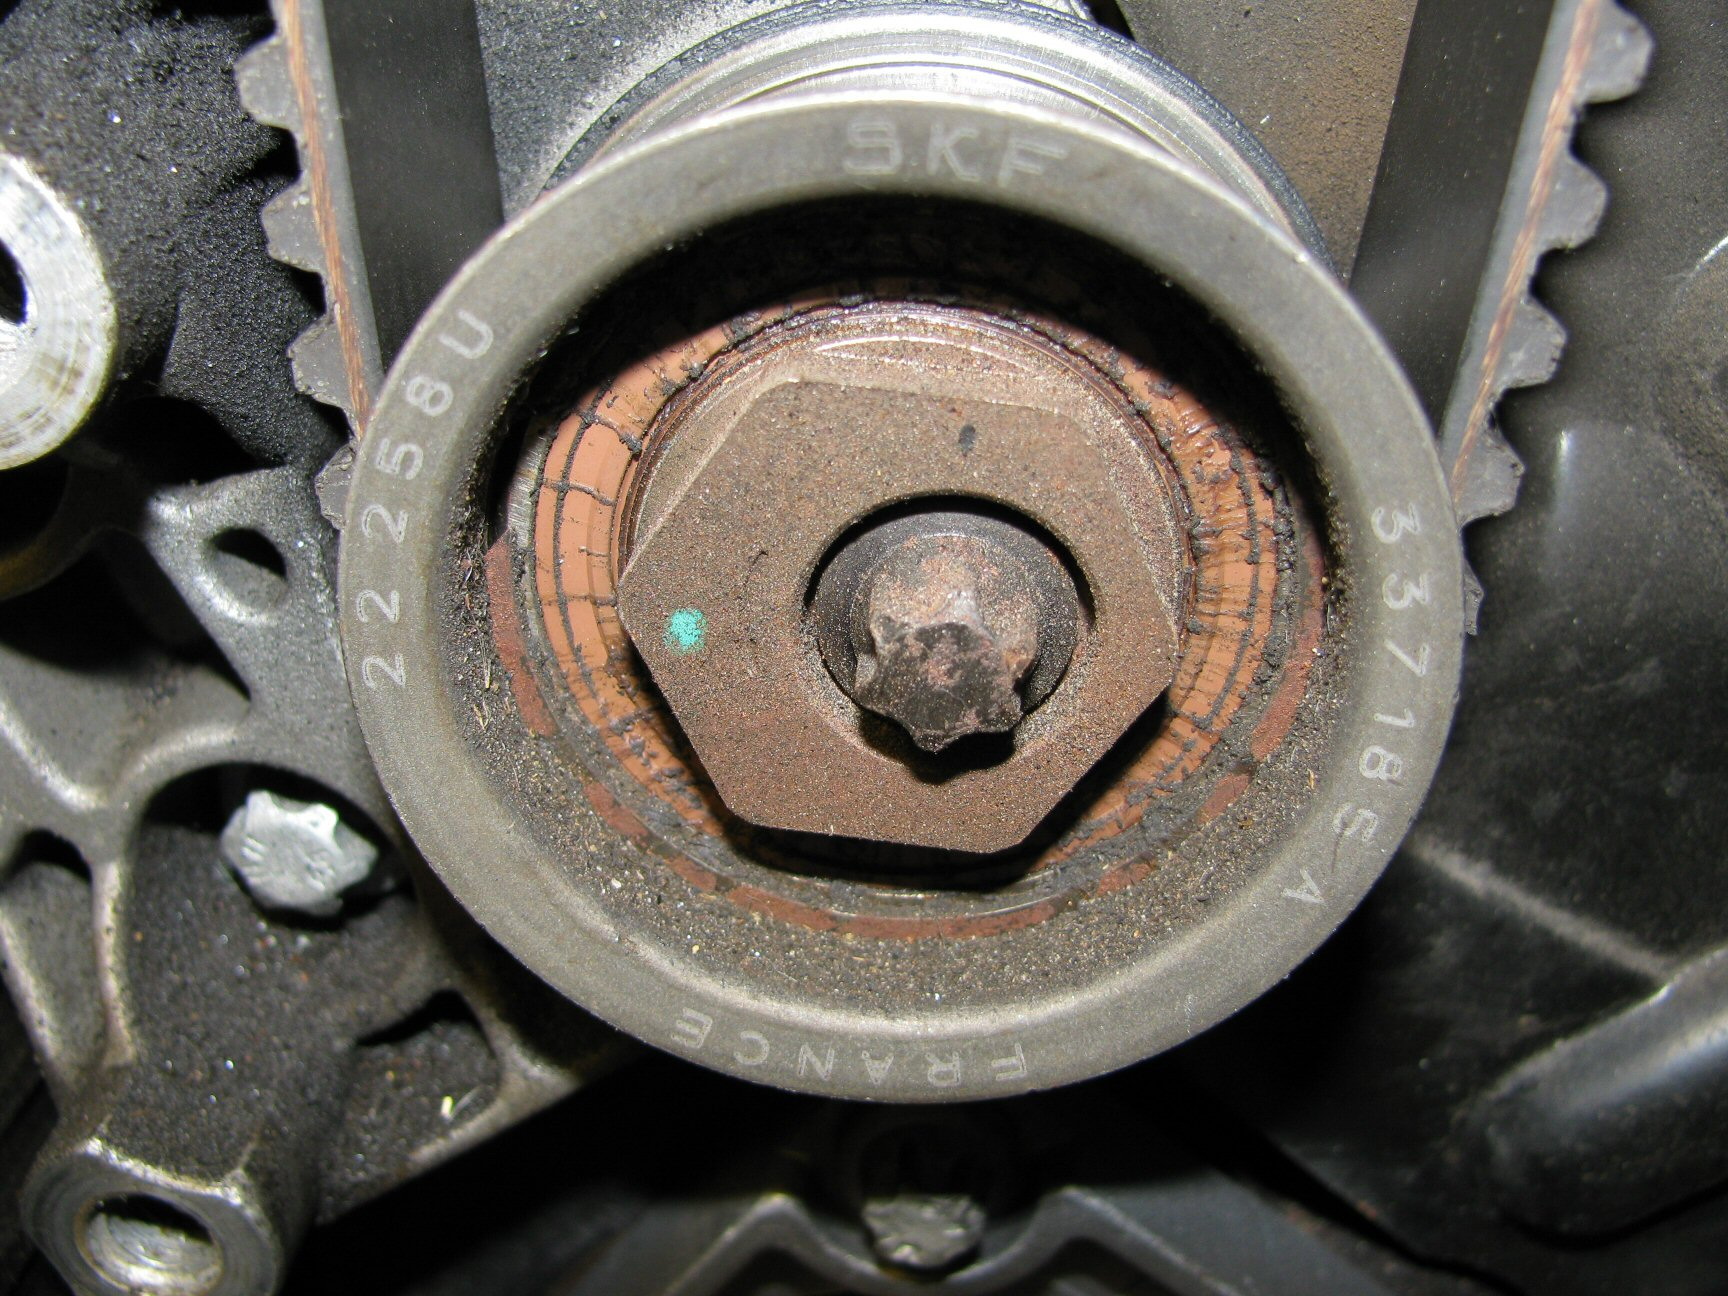 Upper idler pulley. Note the location of the green dot indicating a good initial position of 9 o'clock.